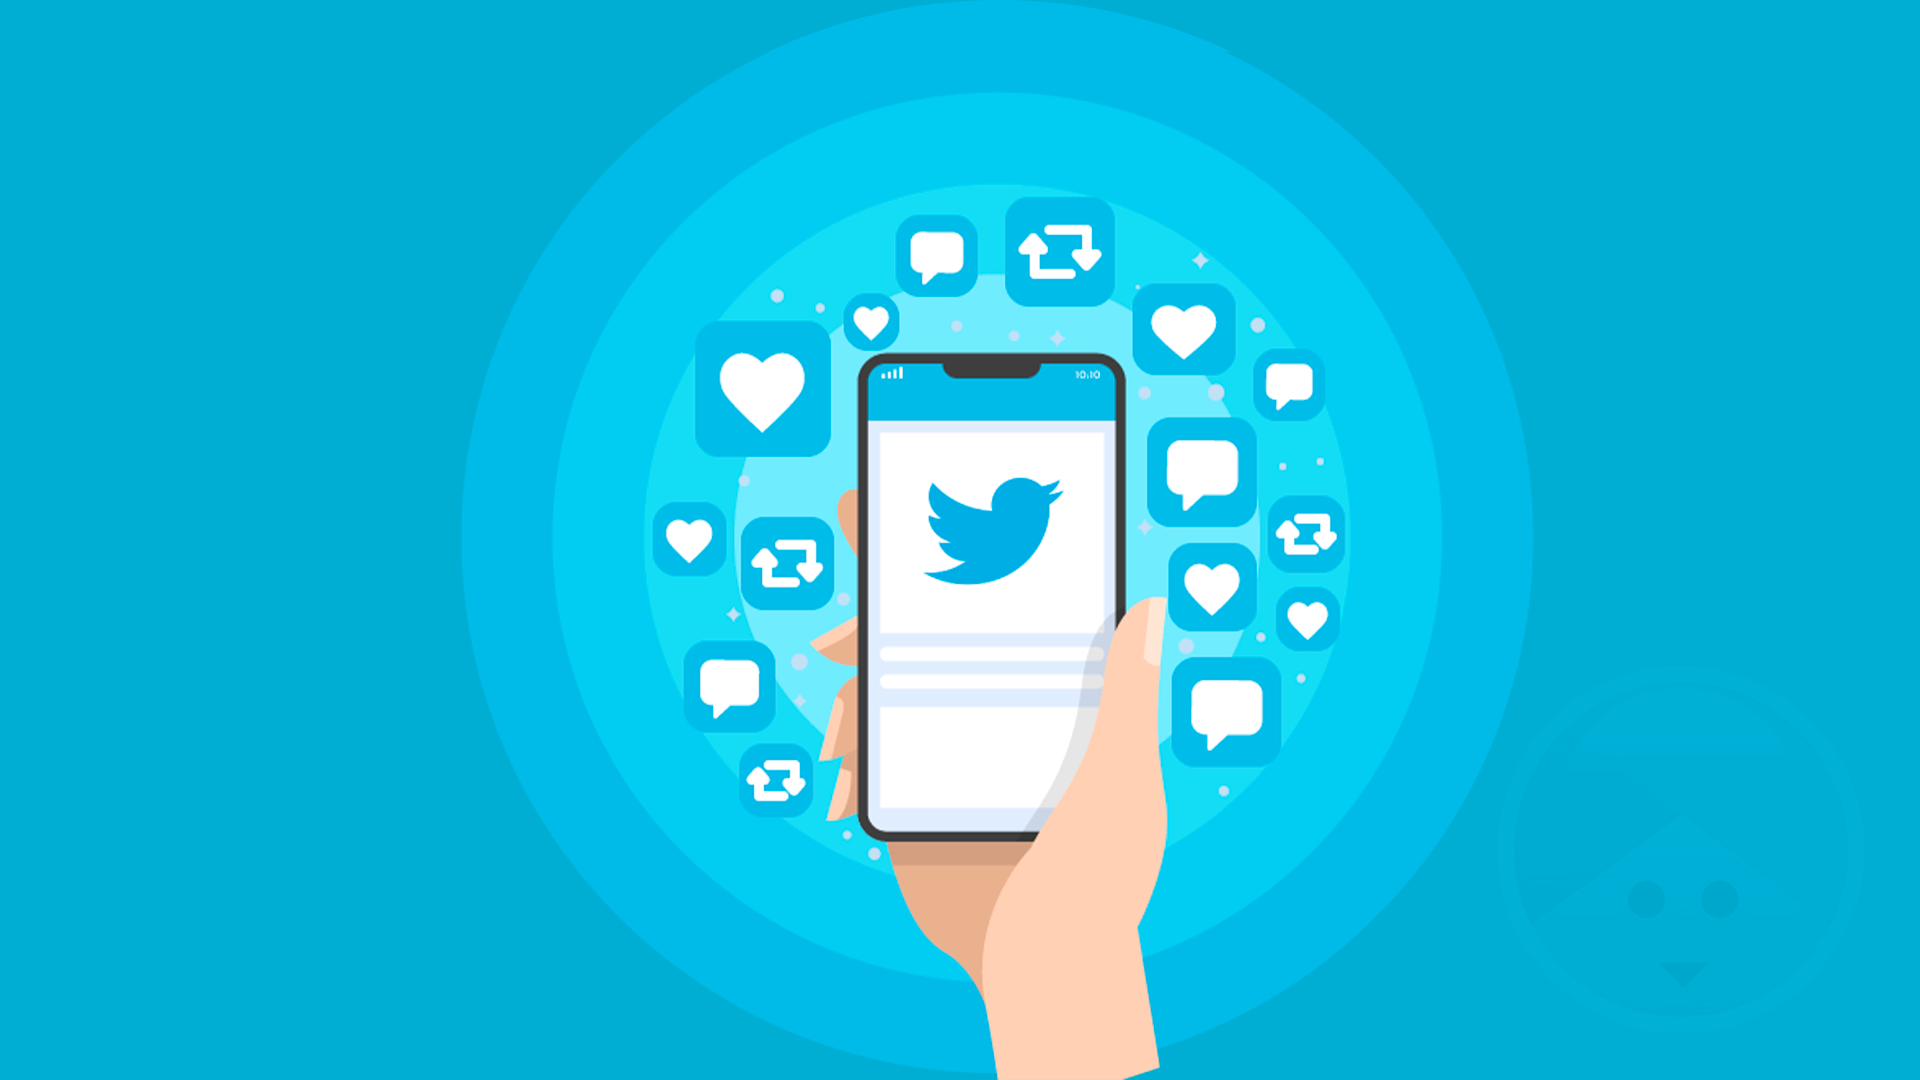 Twitter Tactics: How to Succeed on Twitter